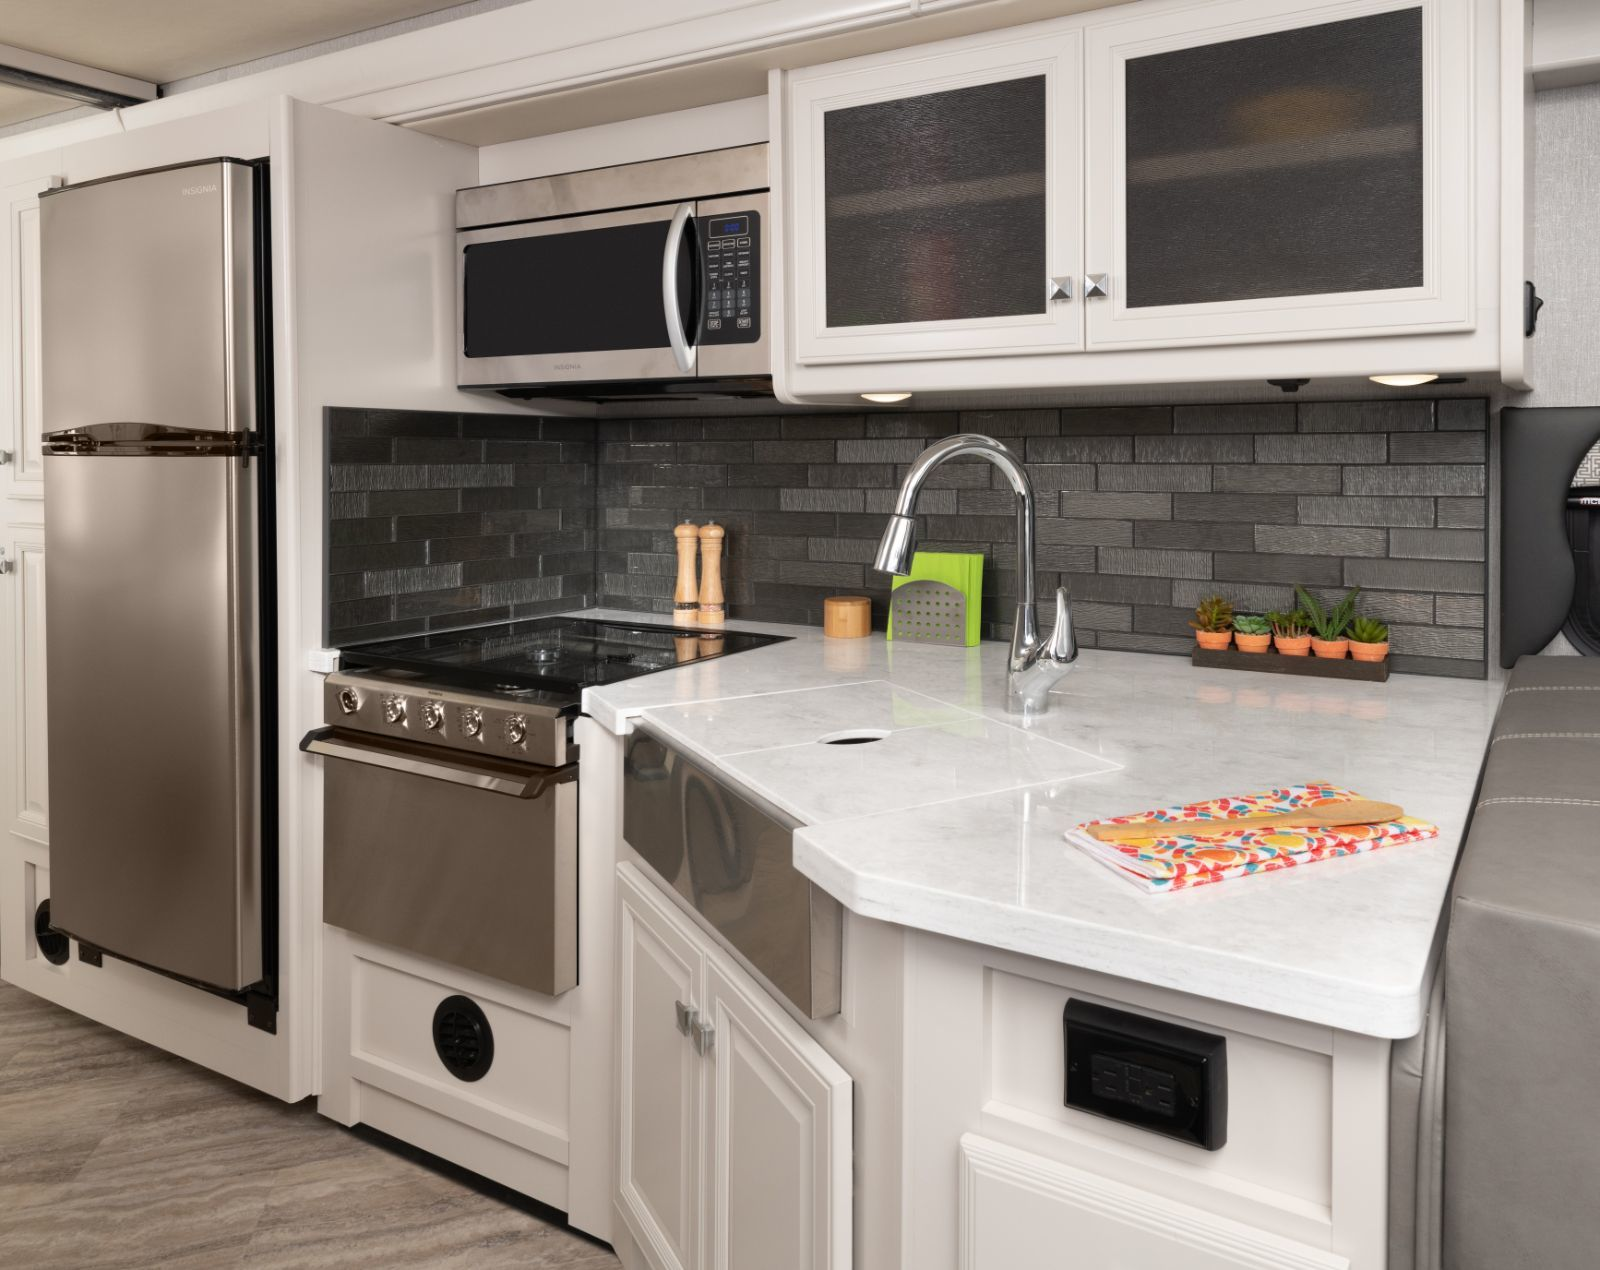 Fortis 32RW Midtown décor with Heritage cabinetry